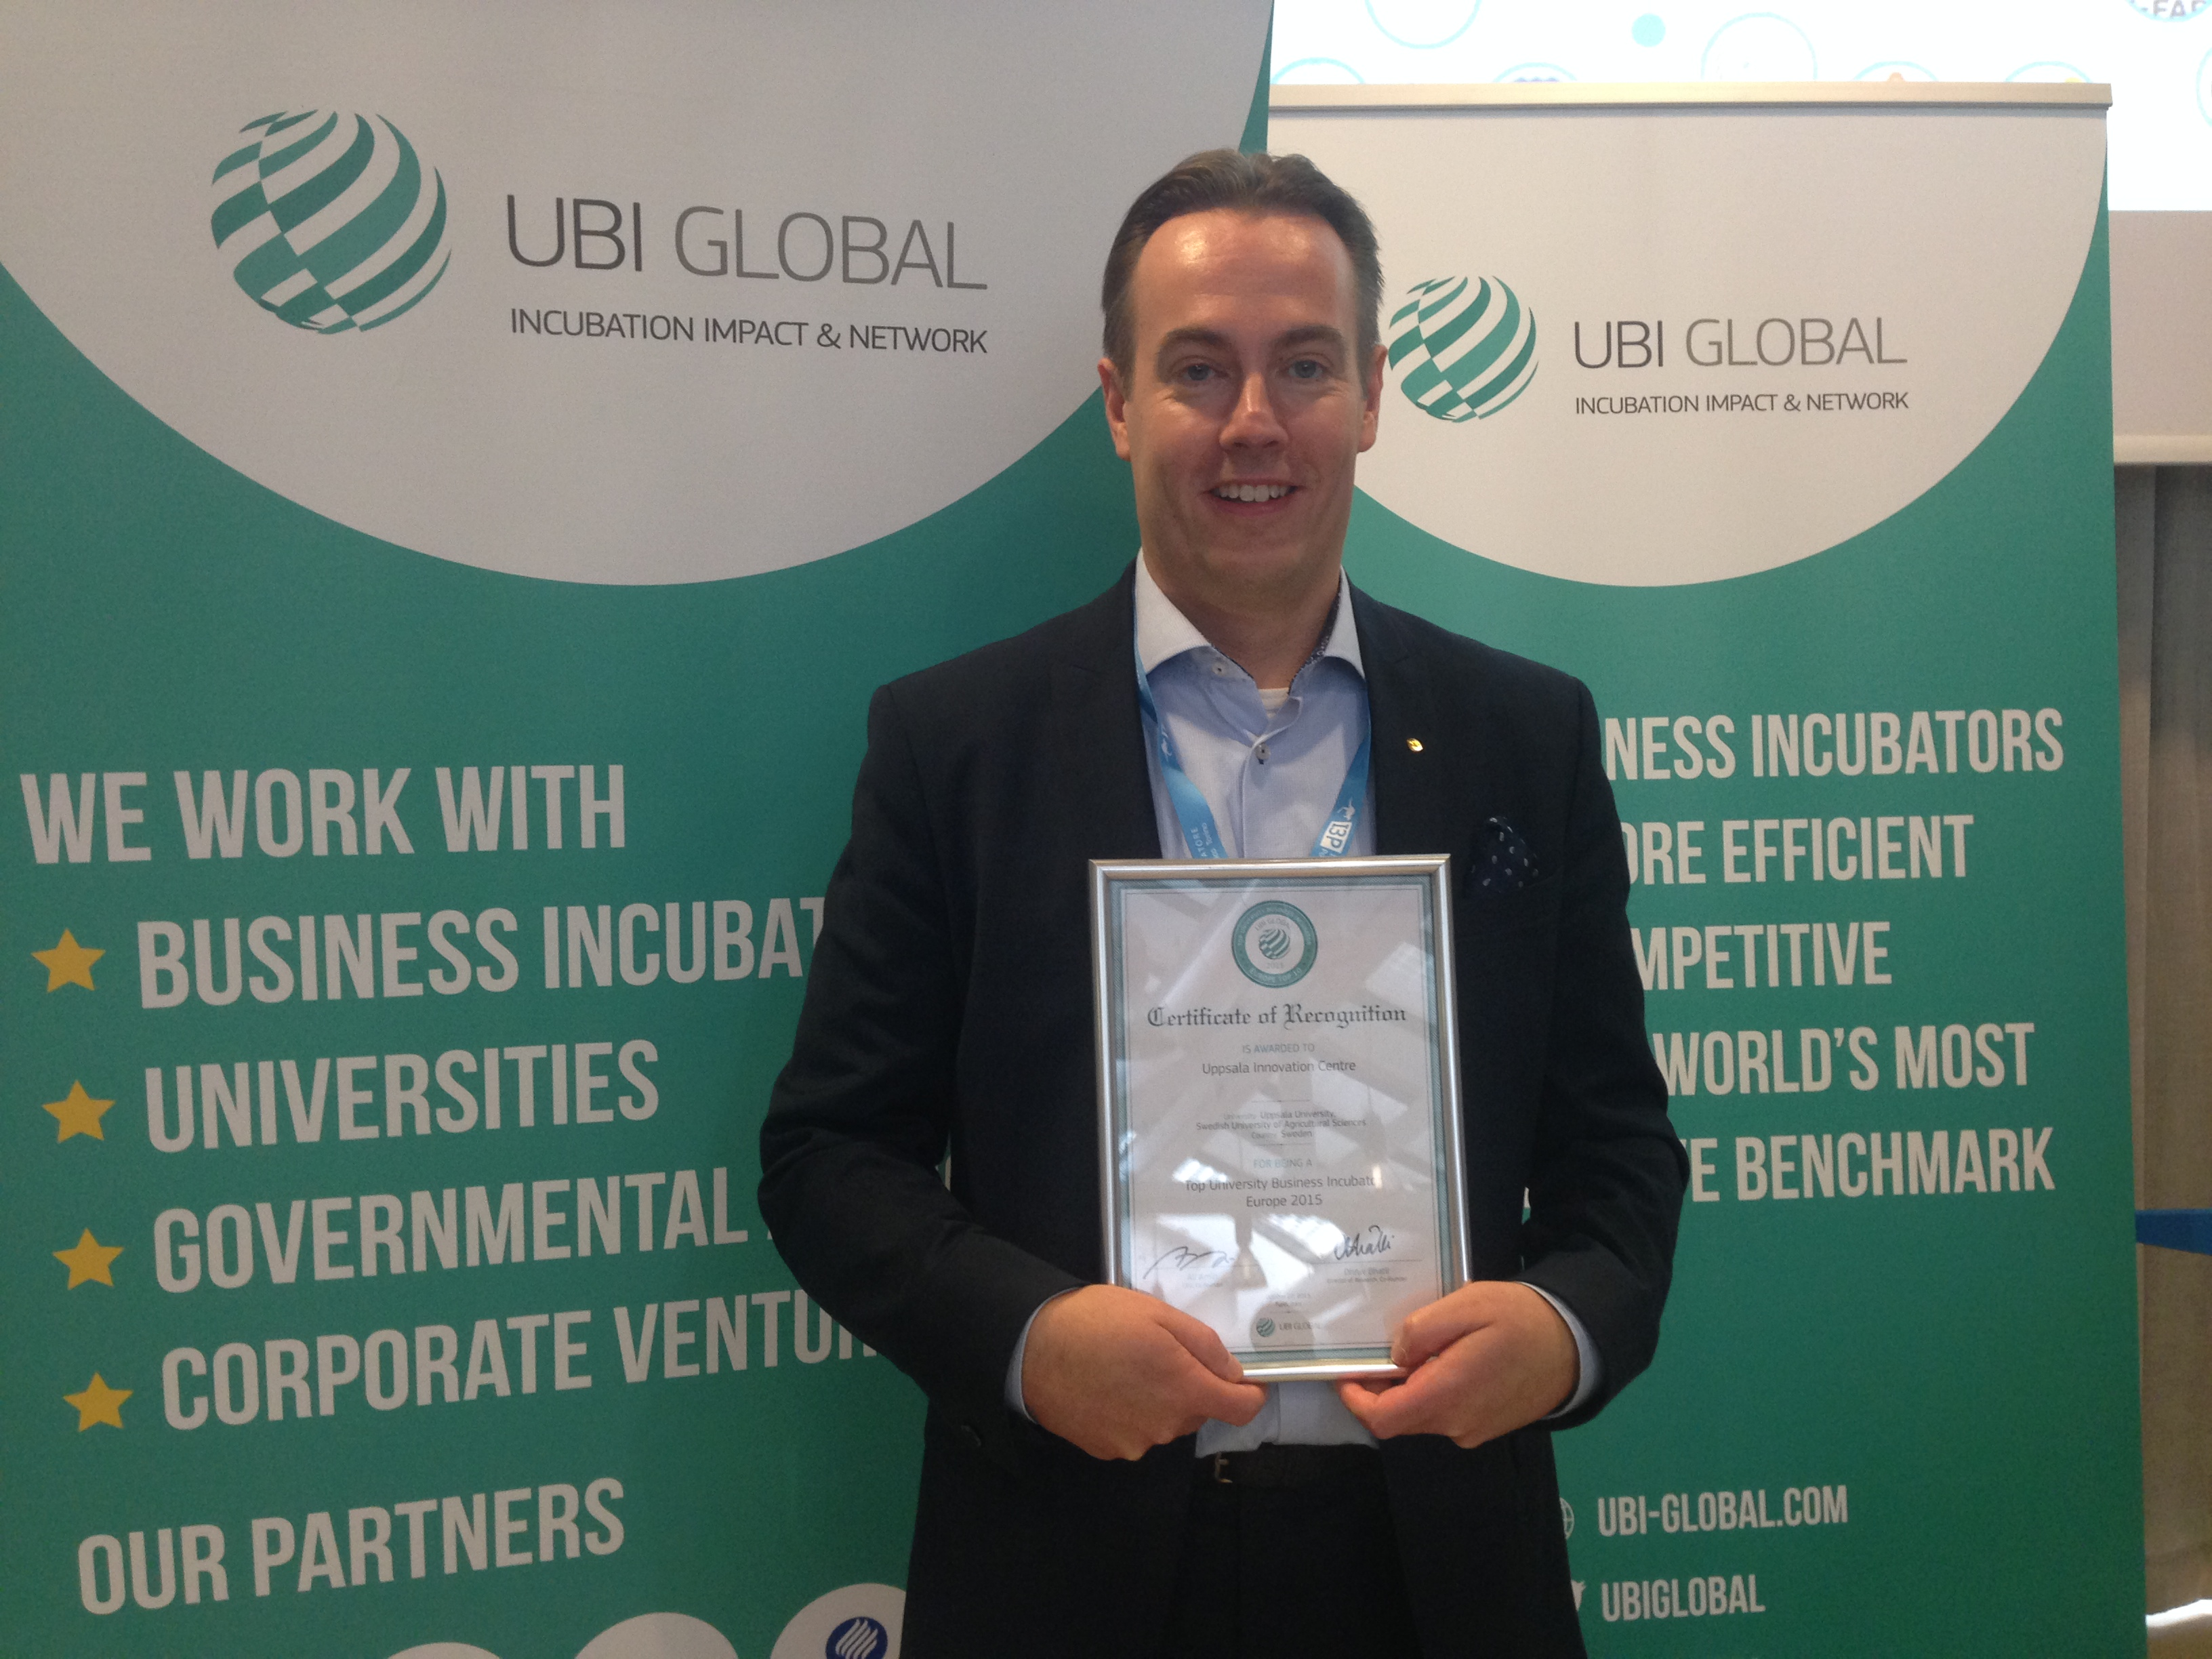 Uppsala Innovation Centre's CEO Per Bengtsson accepts the recognition as Europe's fifth best business incubator with a university affiliation, as listed by UBI Global Benchmark 2015.